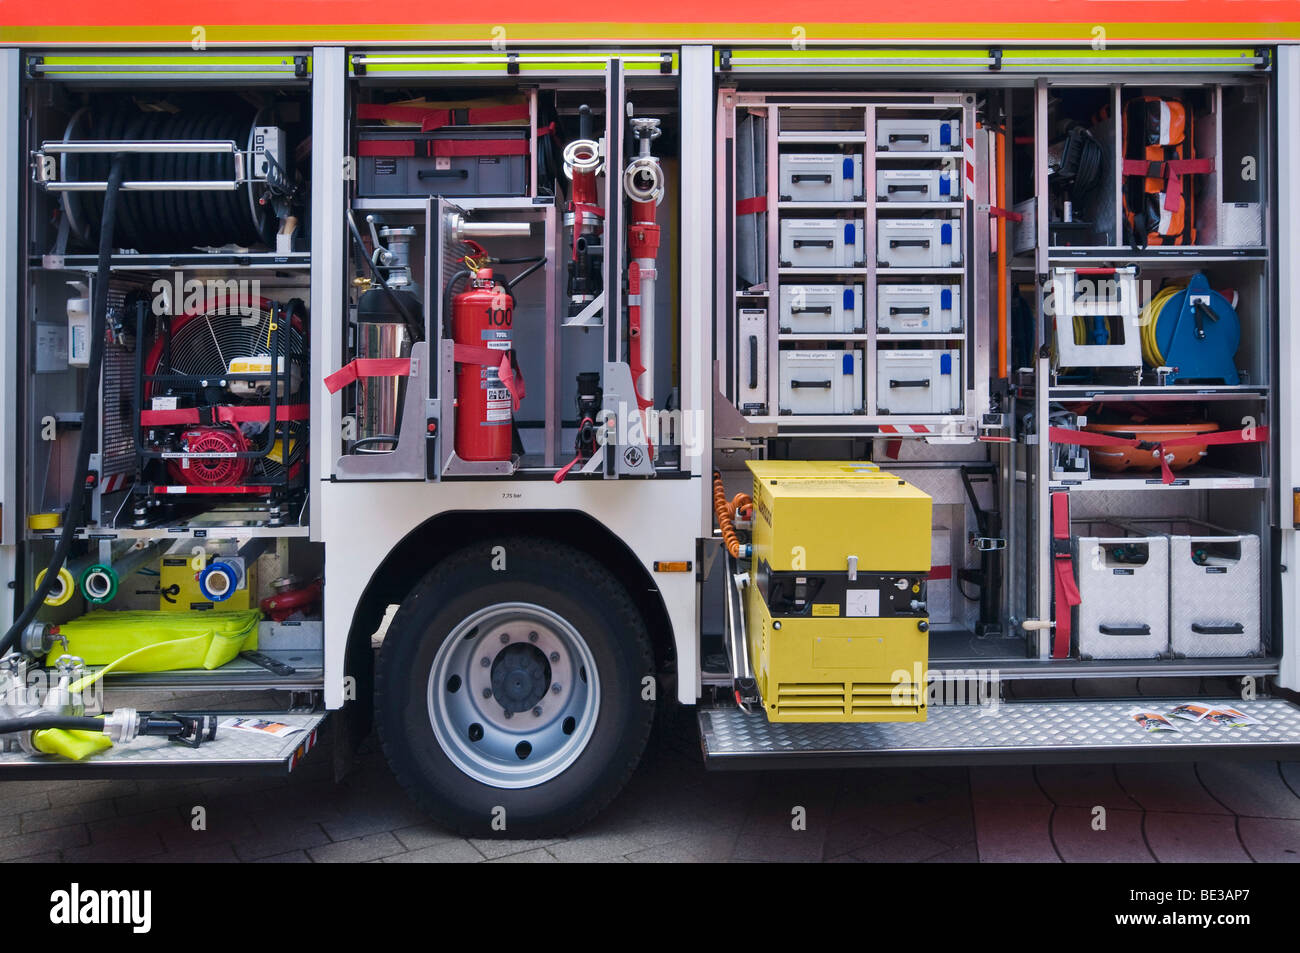 Material rescue vehicle, with fire extinguisher and tool magazine - Stock Image